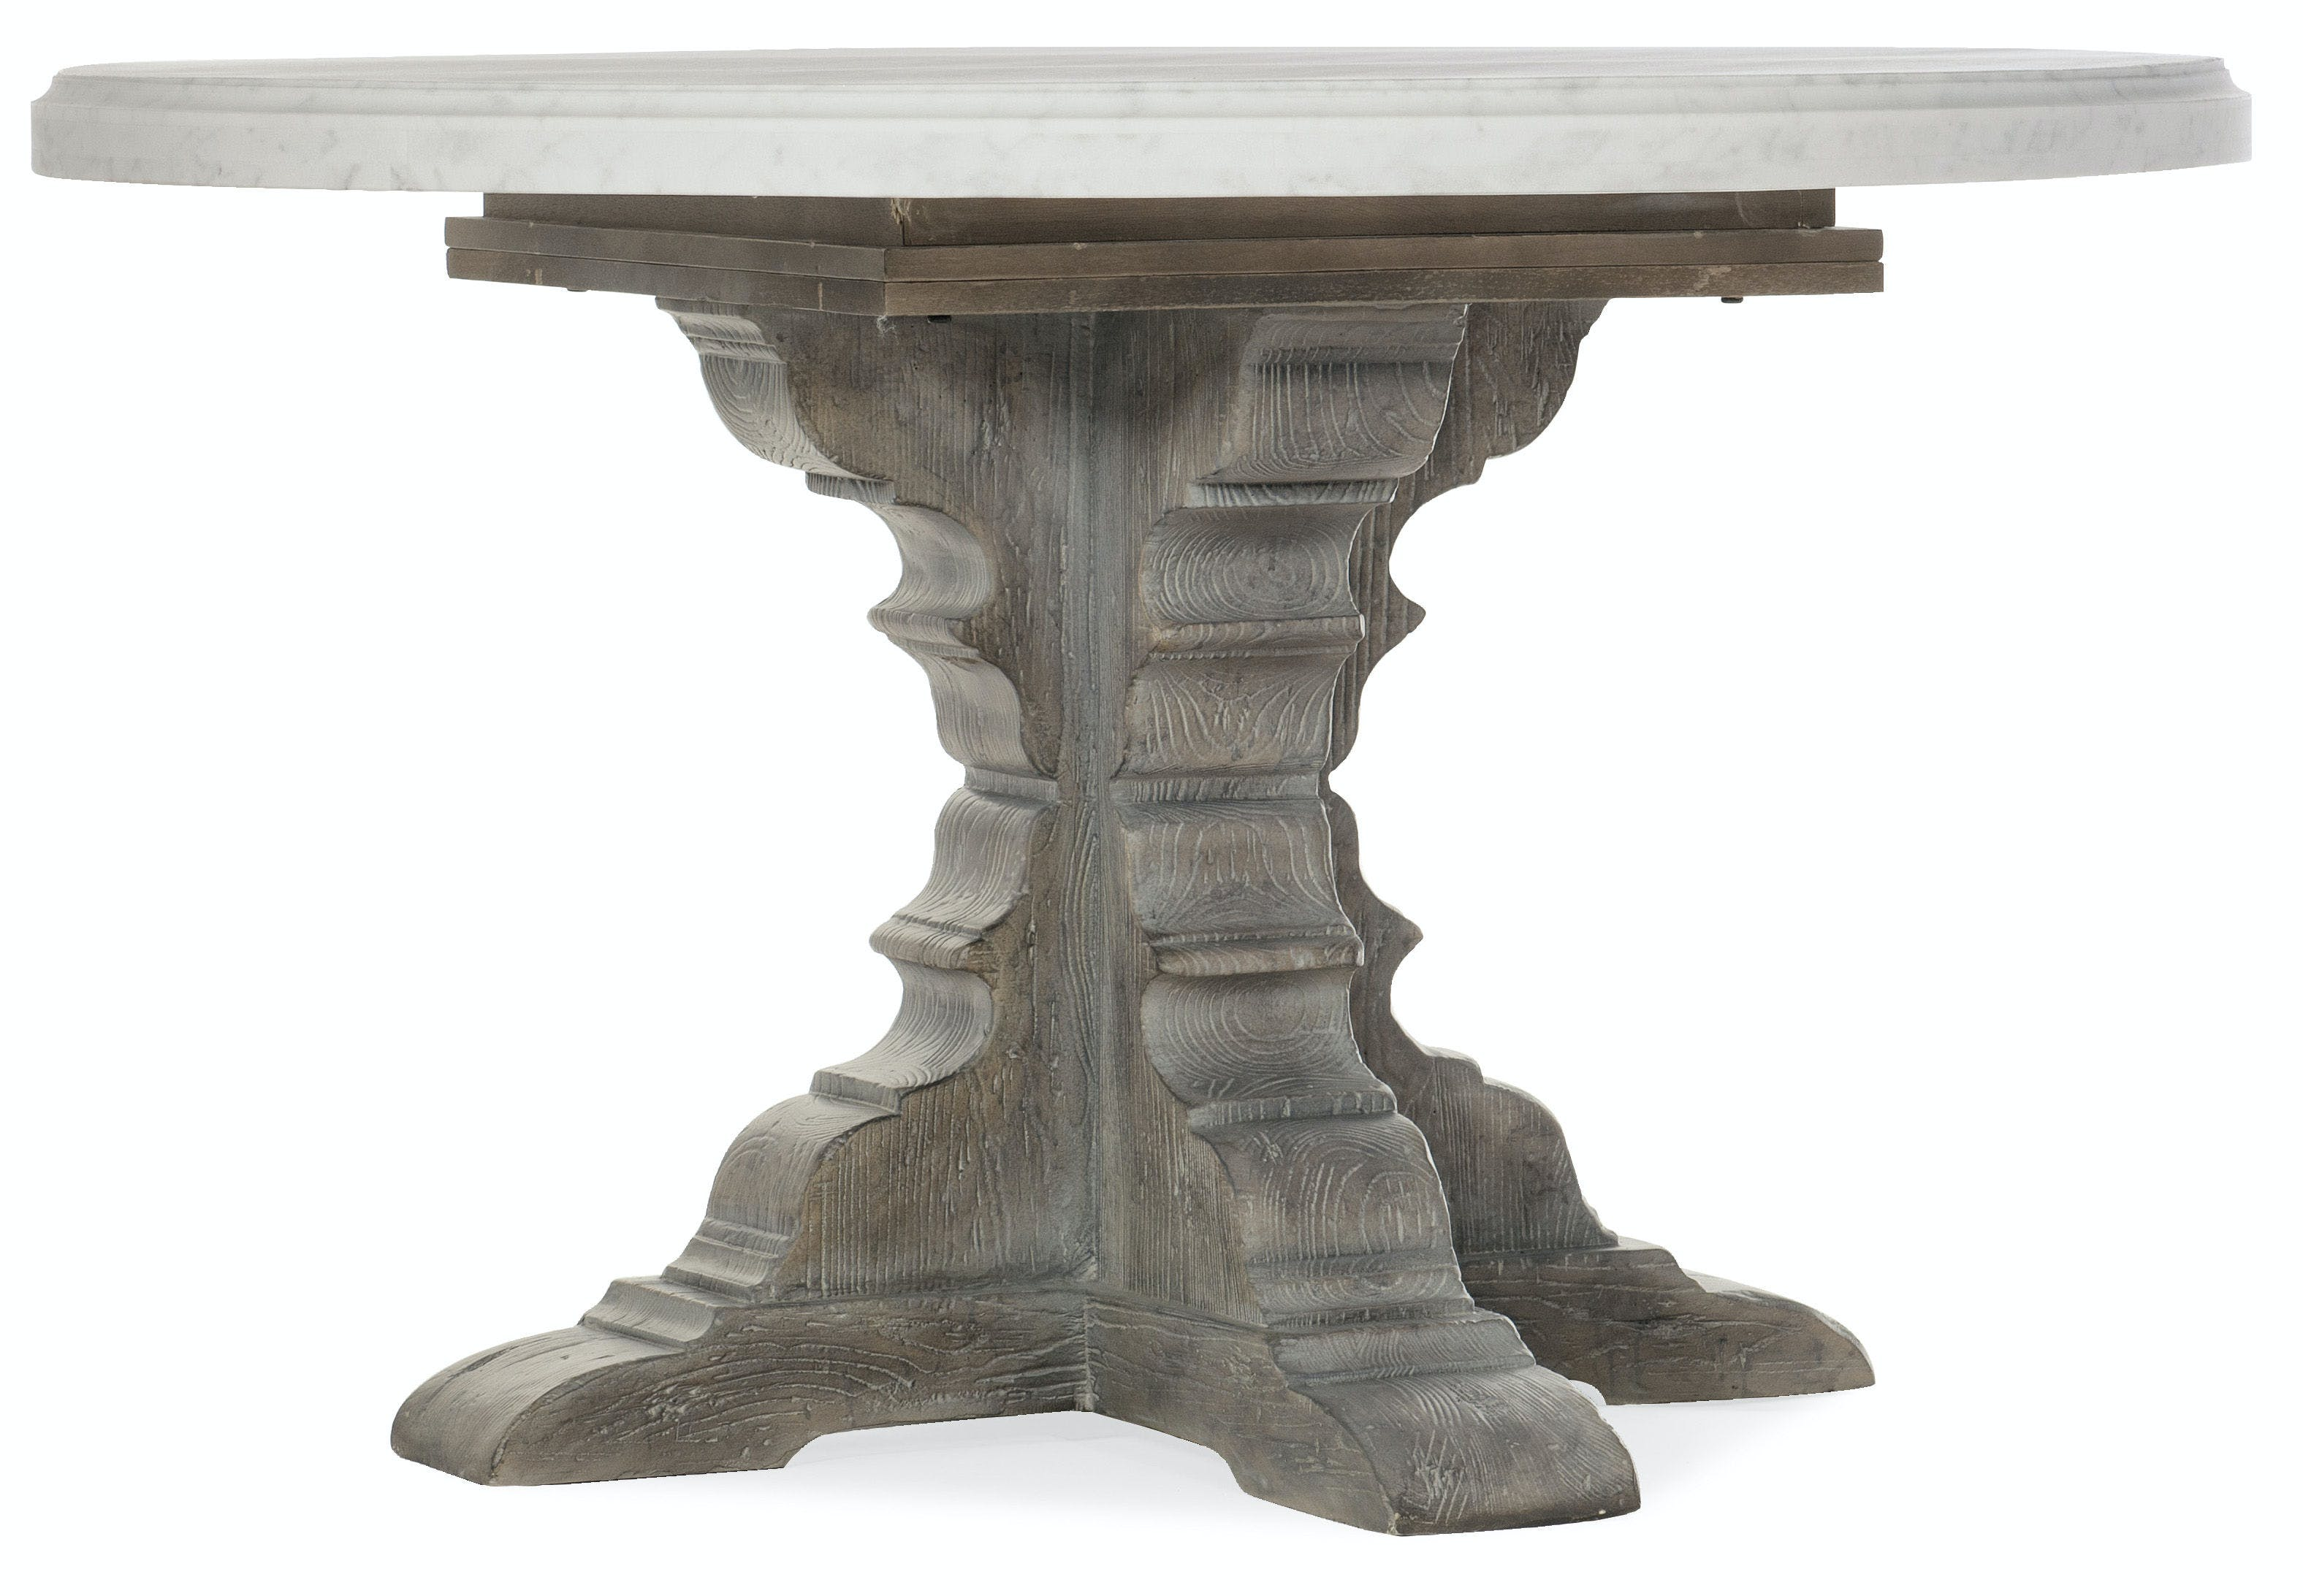 Hooker Furniture Dining Room Beaumont Round Dining Table With 48in Marble Top 5751 75213 00